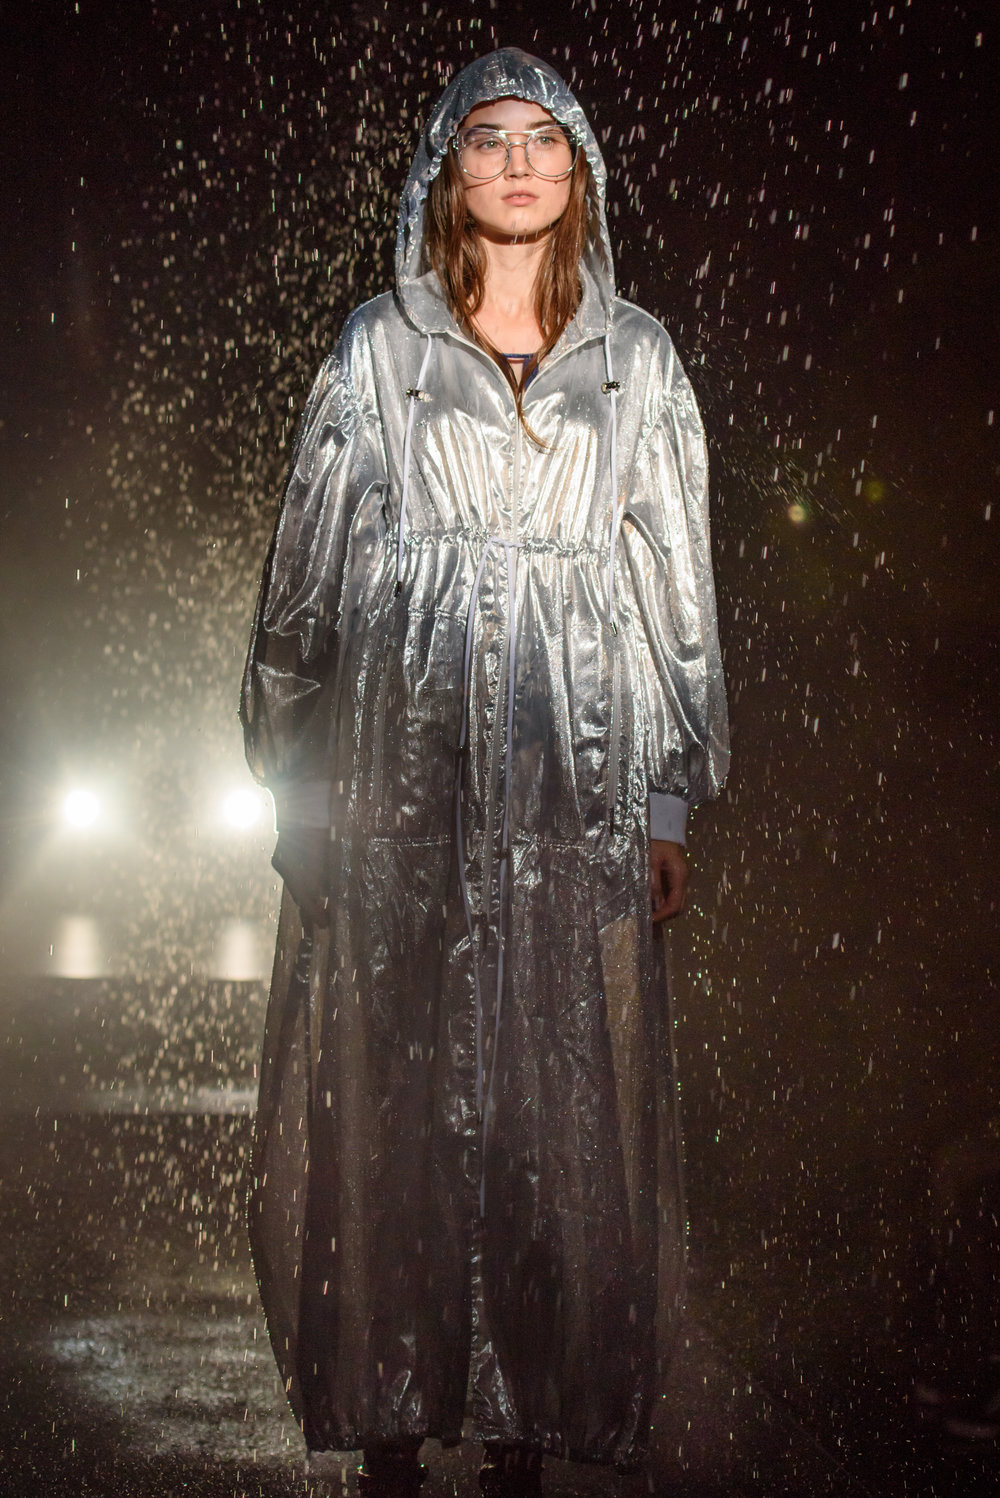 Blame it on the rain - A true feat of fashion show special effects, the D-VEC Spring 2018 show featured an actual rainstorm on the runway.